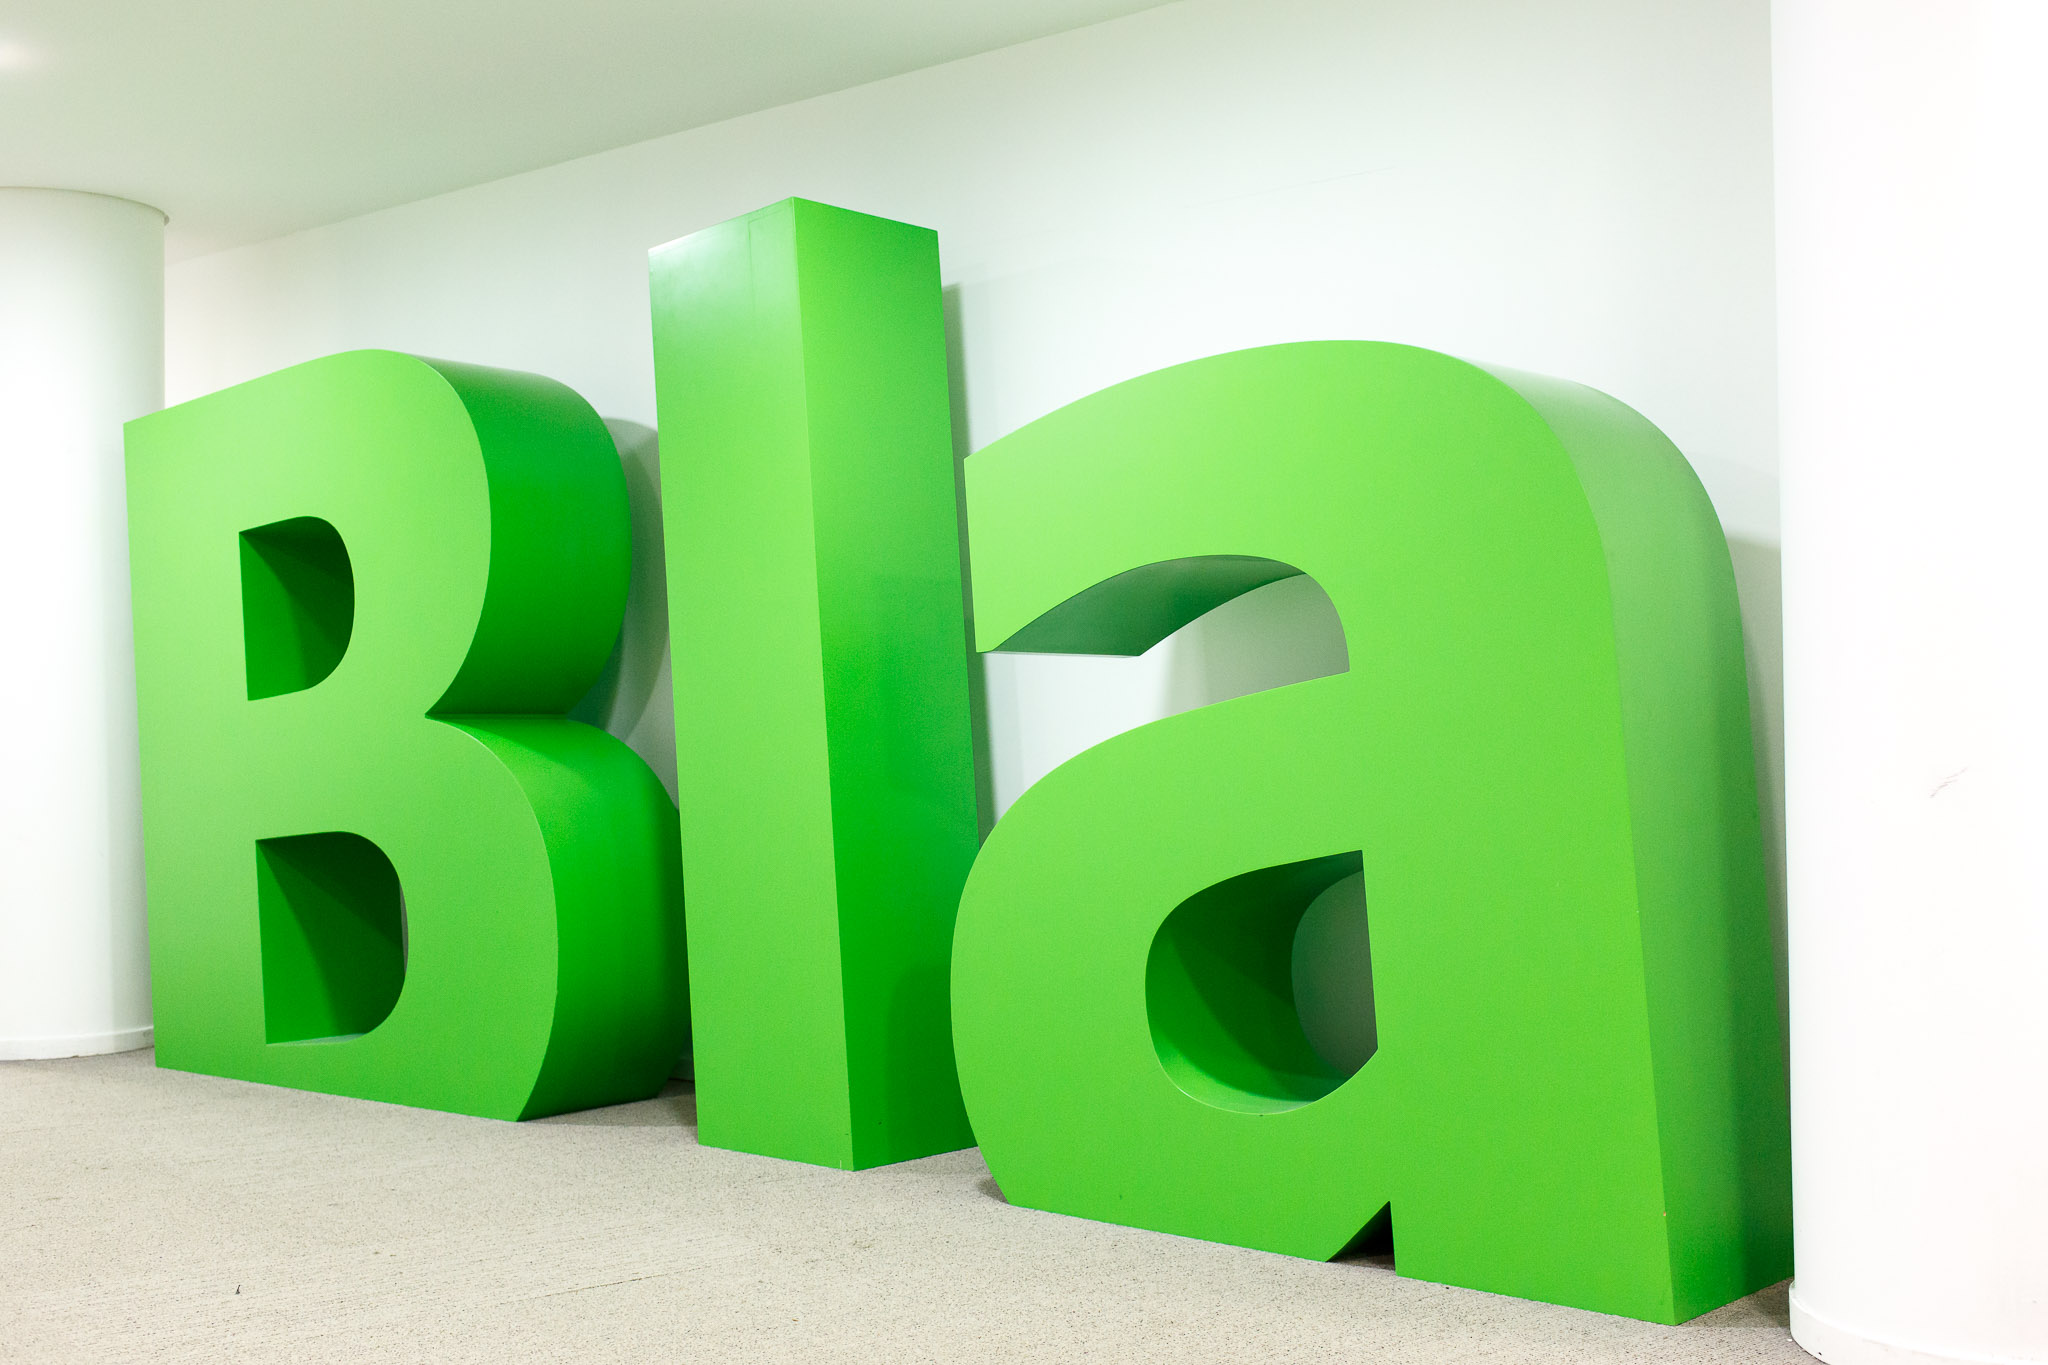 """The """"bla' in BlaBlaCar's name refers to a setting where users can say how chatty they are -- bla for taciturn, blabla for average and blablabla for very talkative."""